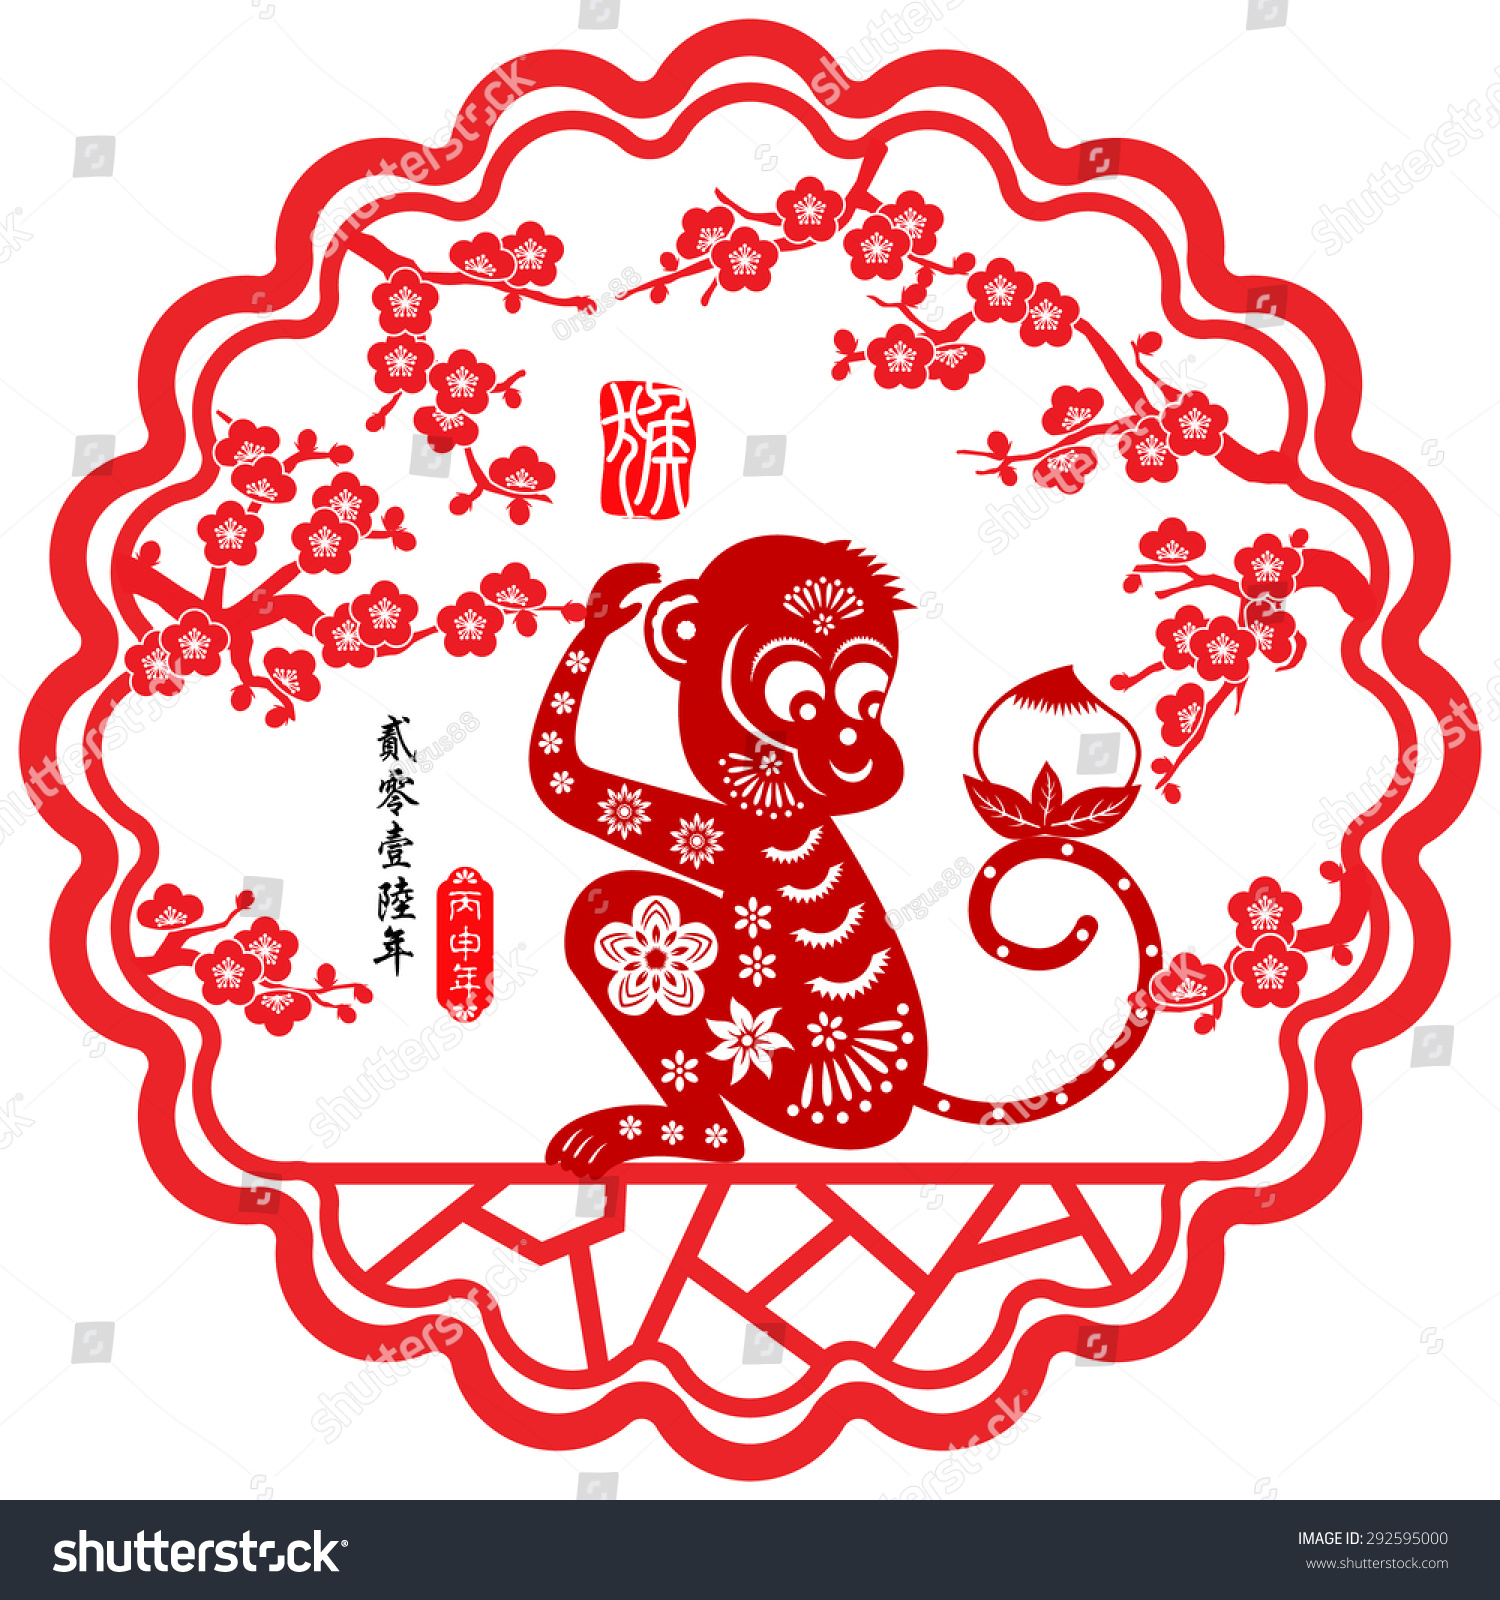 stock-vector--lunar-new-year-greeting-card-chinese-year-of-monkey-by ...